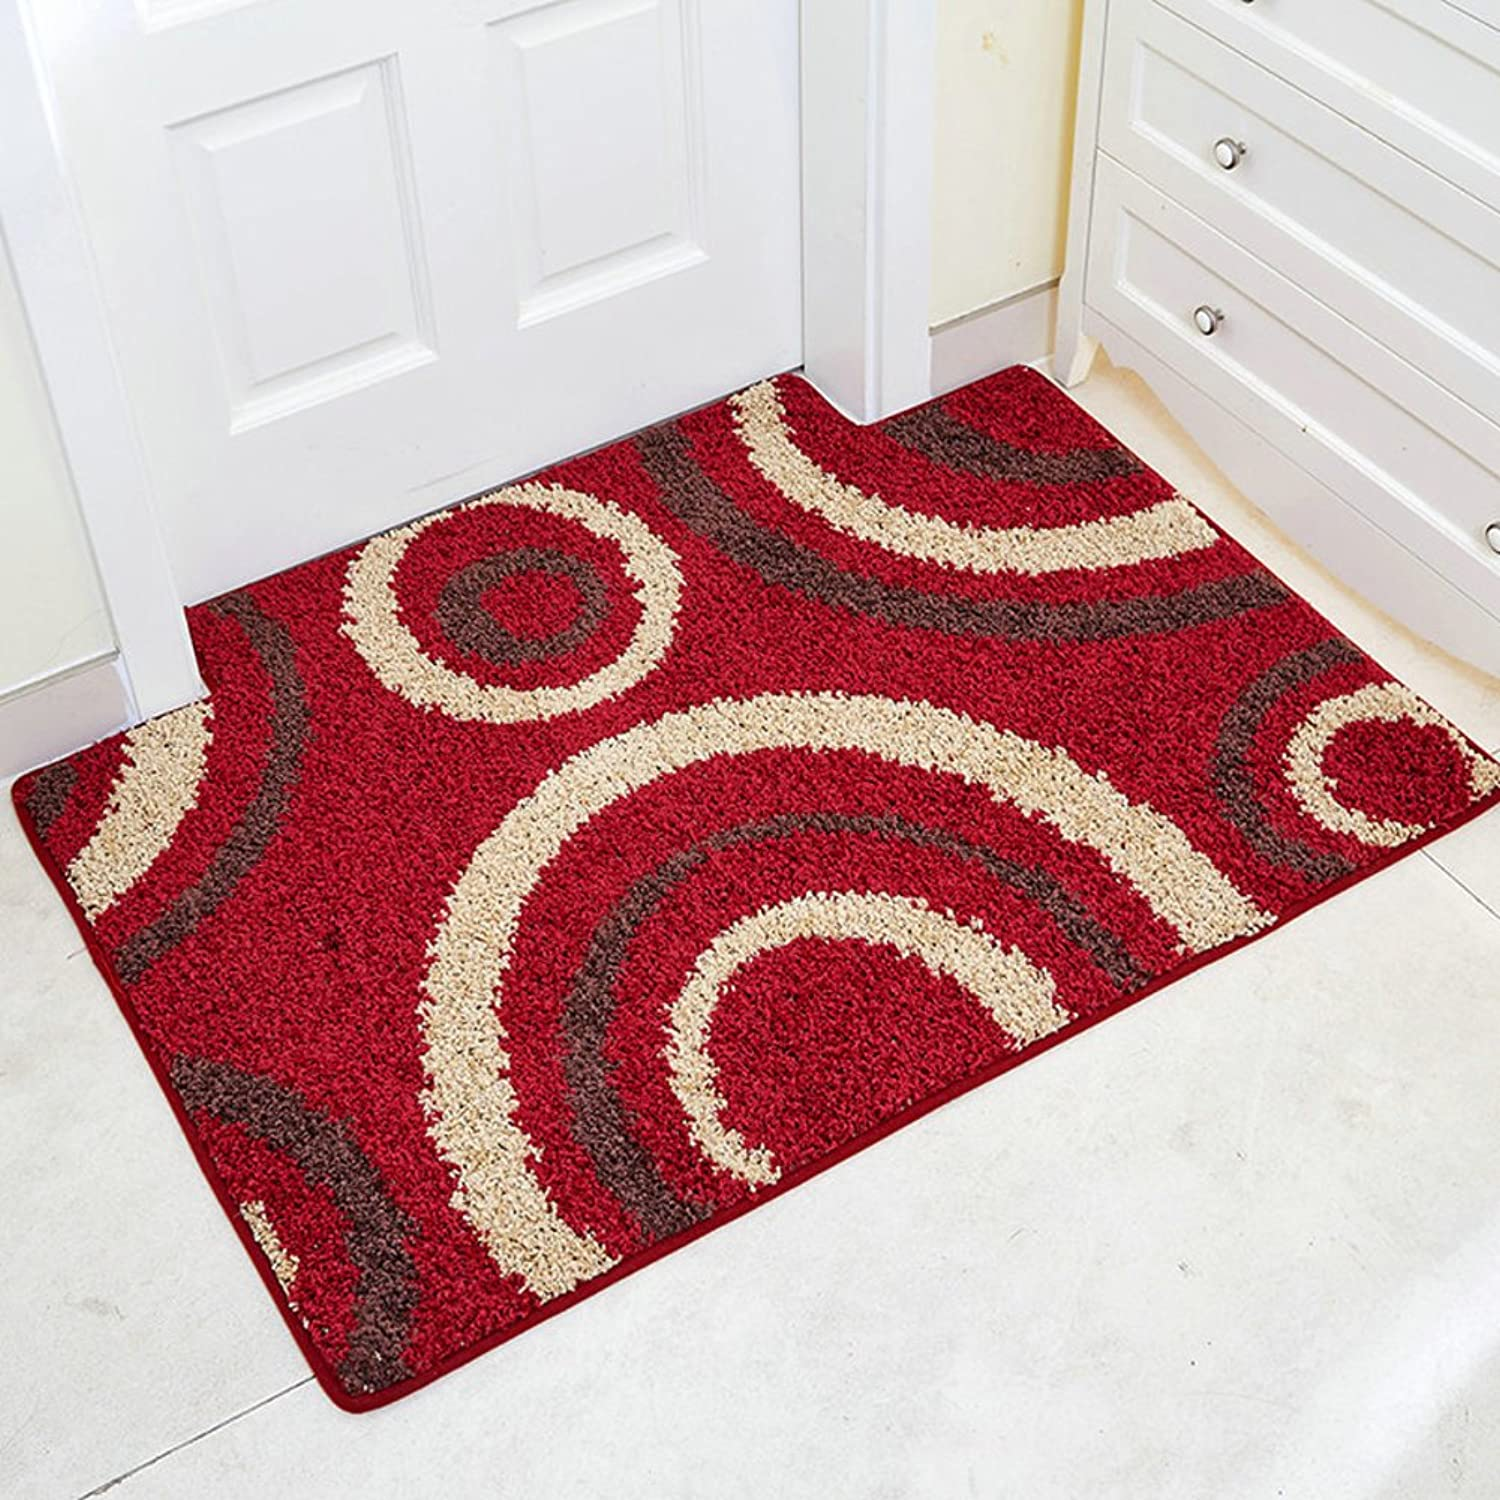 Indoor Mats Doormat Door,Indoor Mats Mats in The Hall Doormat Door Mats Floor Mat-A 90x120cm(35x47inch)